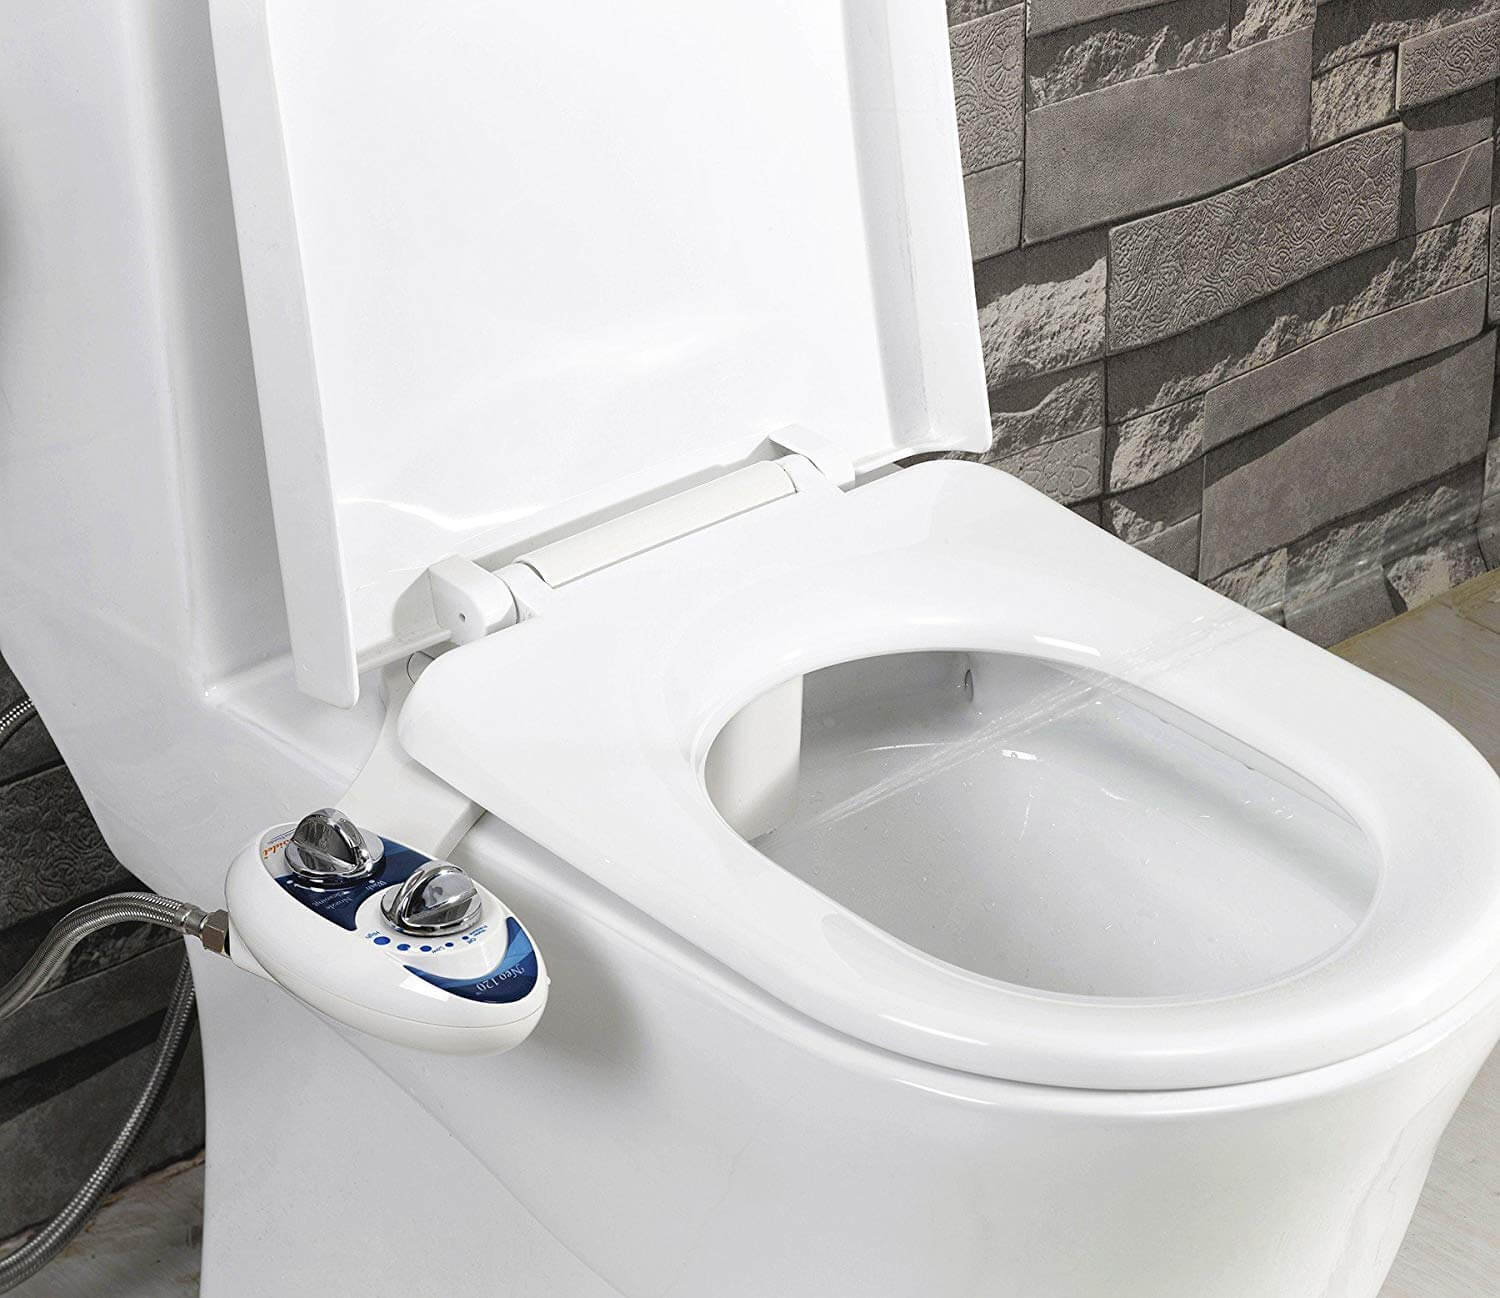 Luxe Bidet Neo 120 Review Non Mechanical Toilet Seat